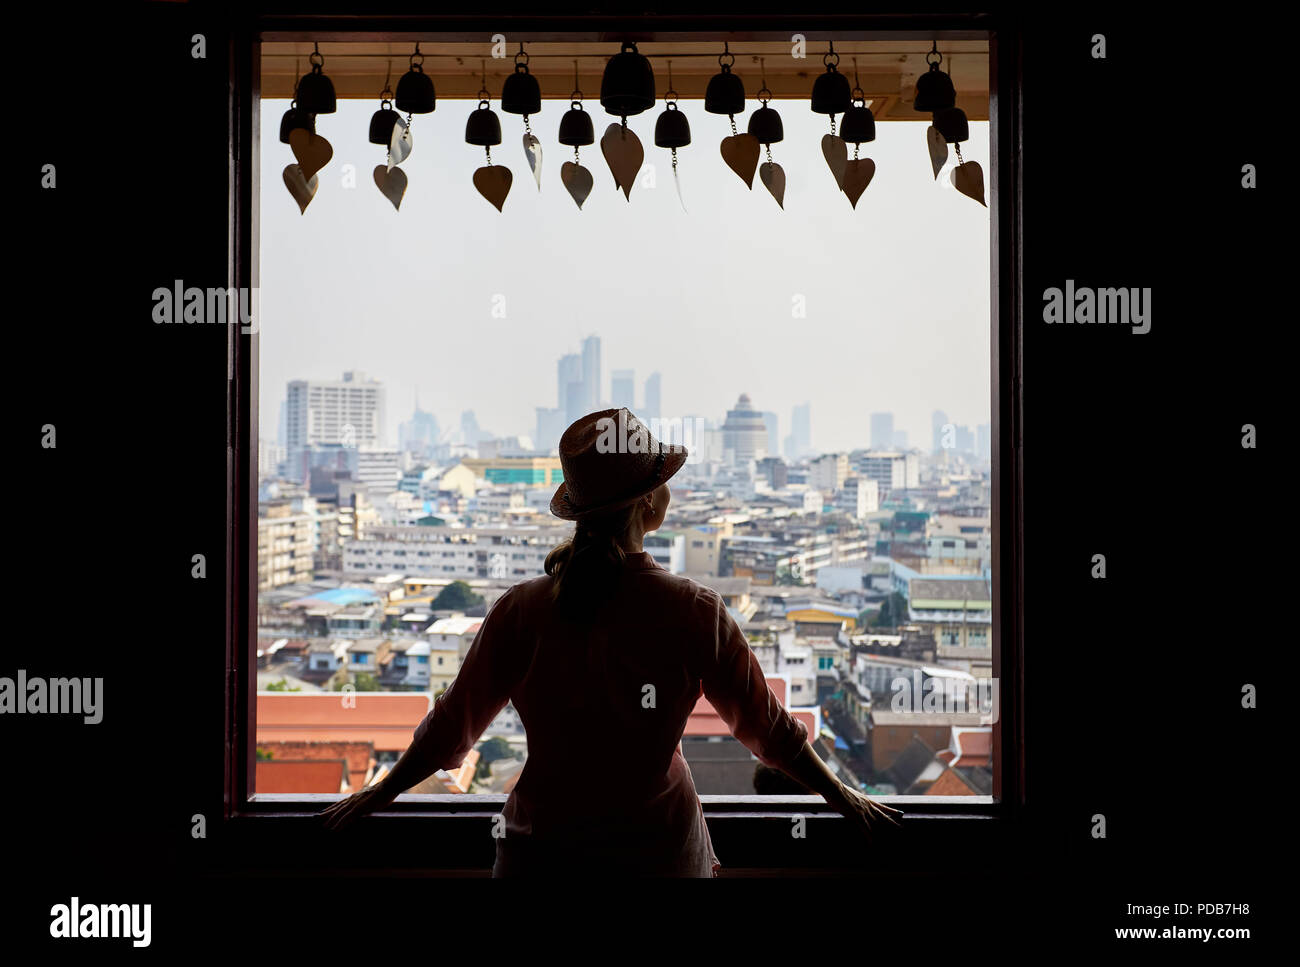 Silhouette of tourist woman looking in window to Bangkok city view of skyscrapers business district from Golden Mountain Pagoda Wat Saket at overcast  - Stock Image